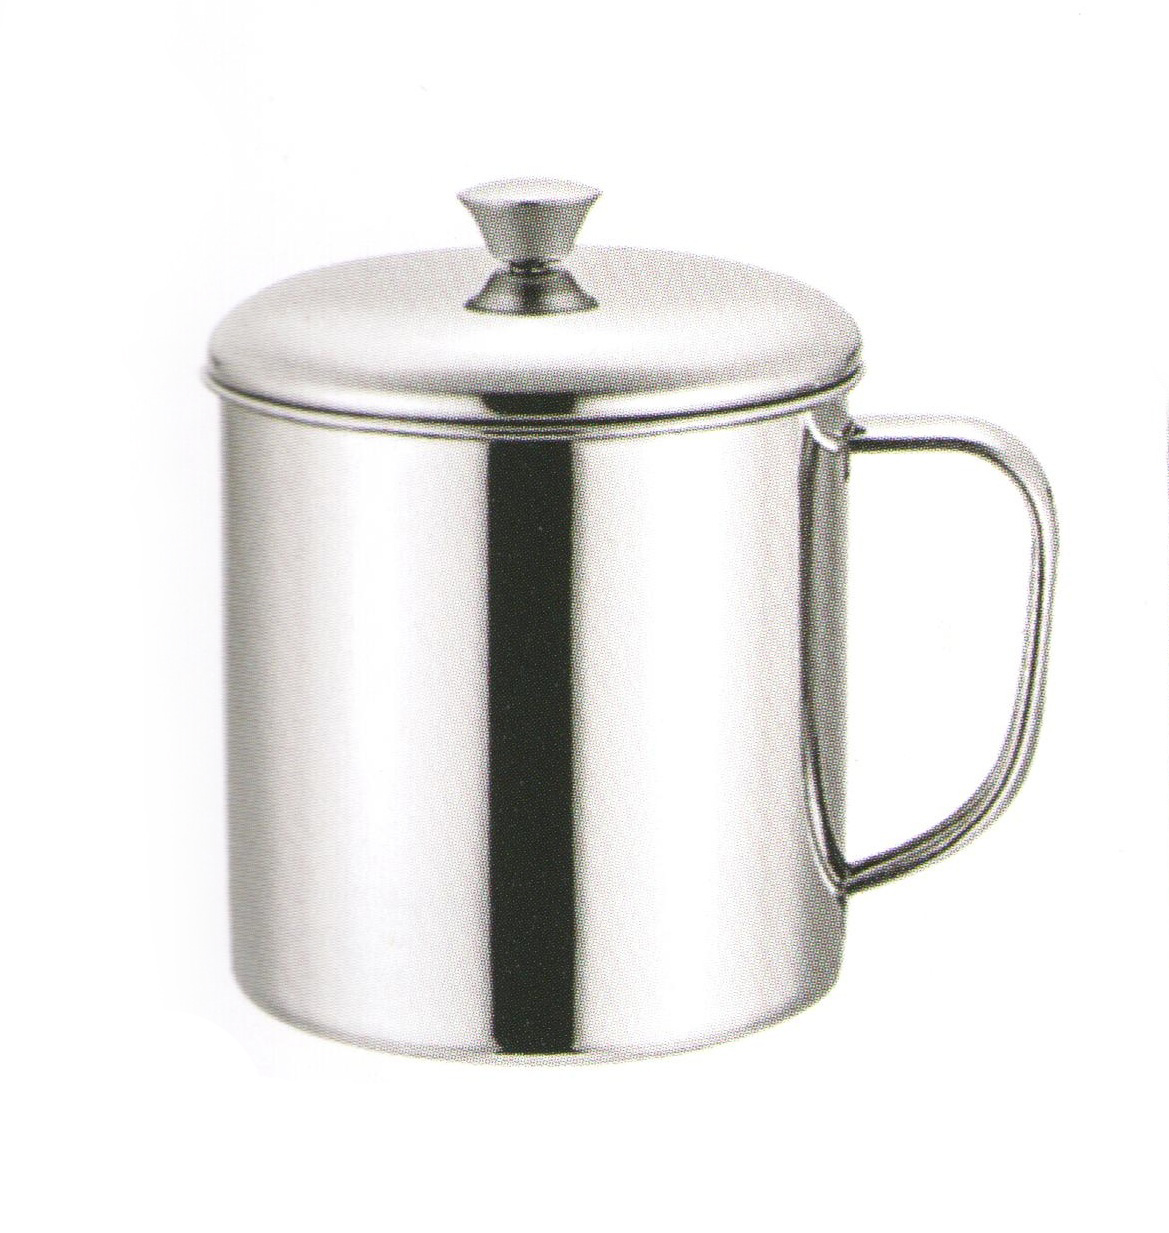 Stainless Steel Cups with Cover Scc018